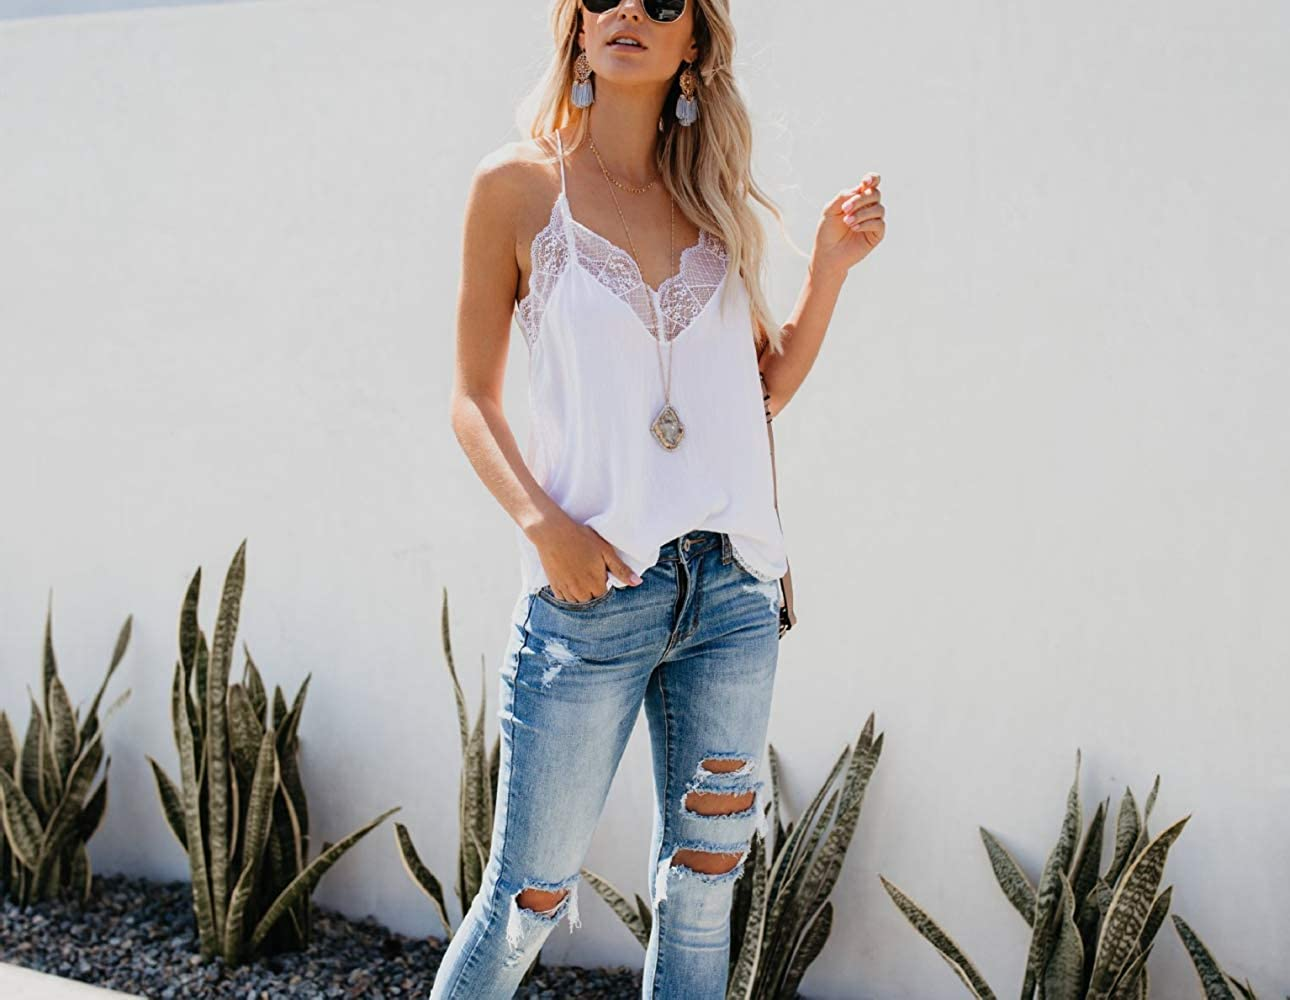 Nlyefa Womens Summer Lace Camisole Tops Casual Solid Color V Neck Vest Tees